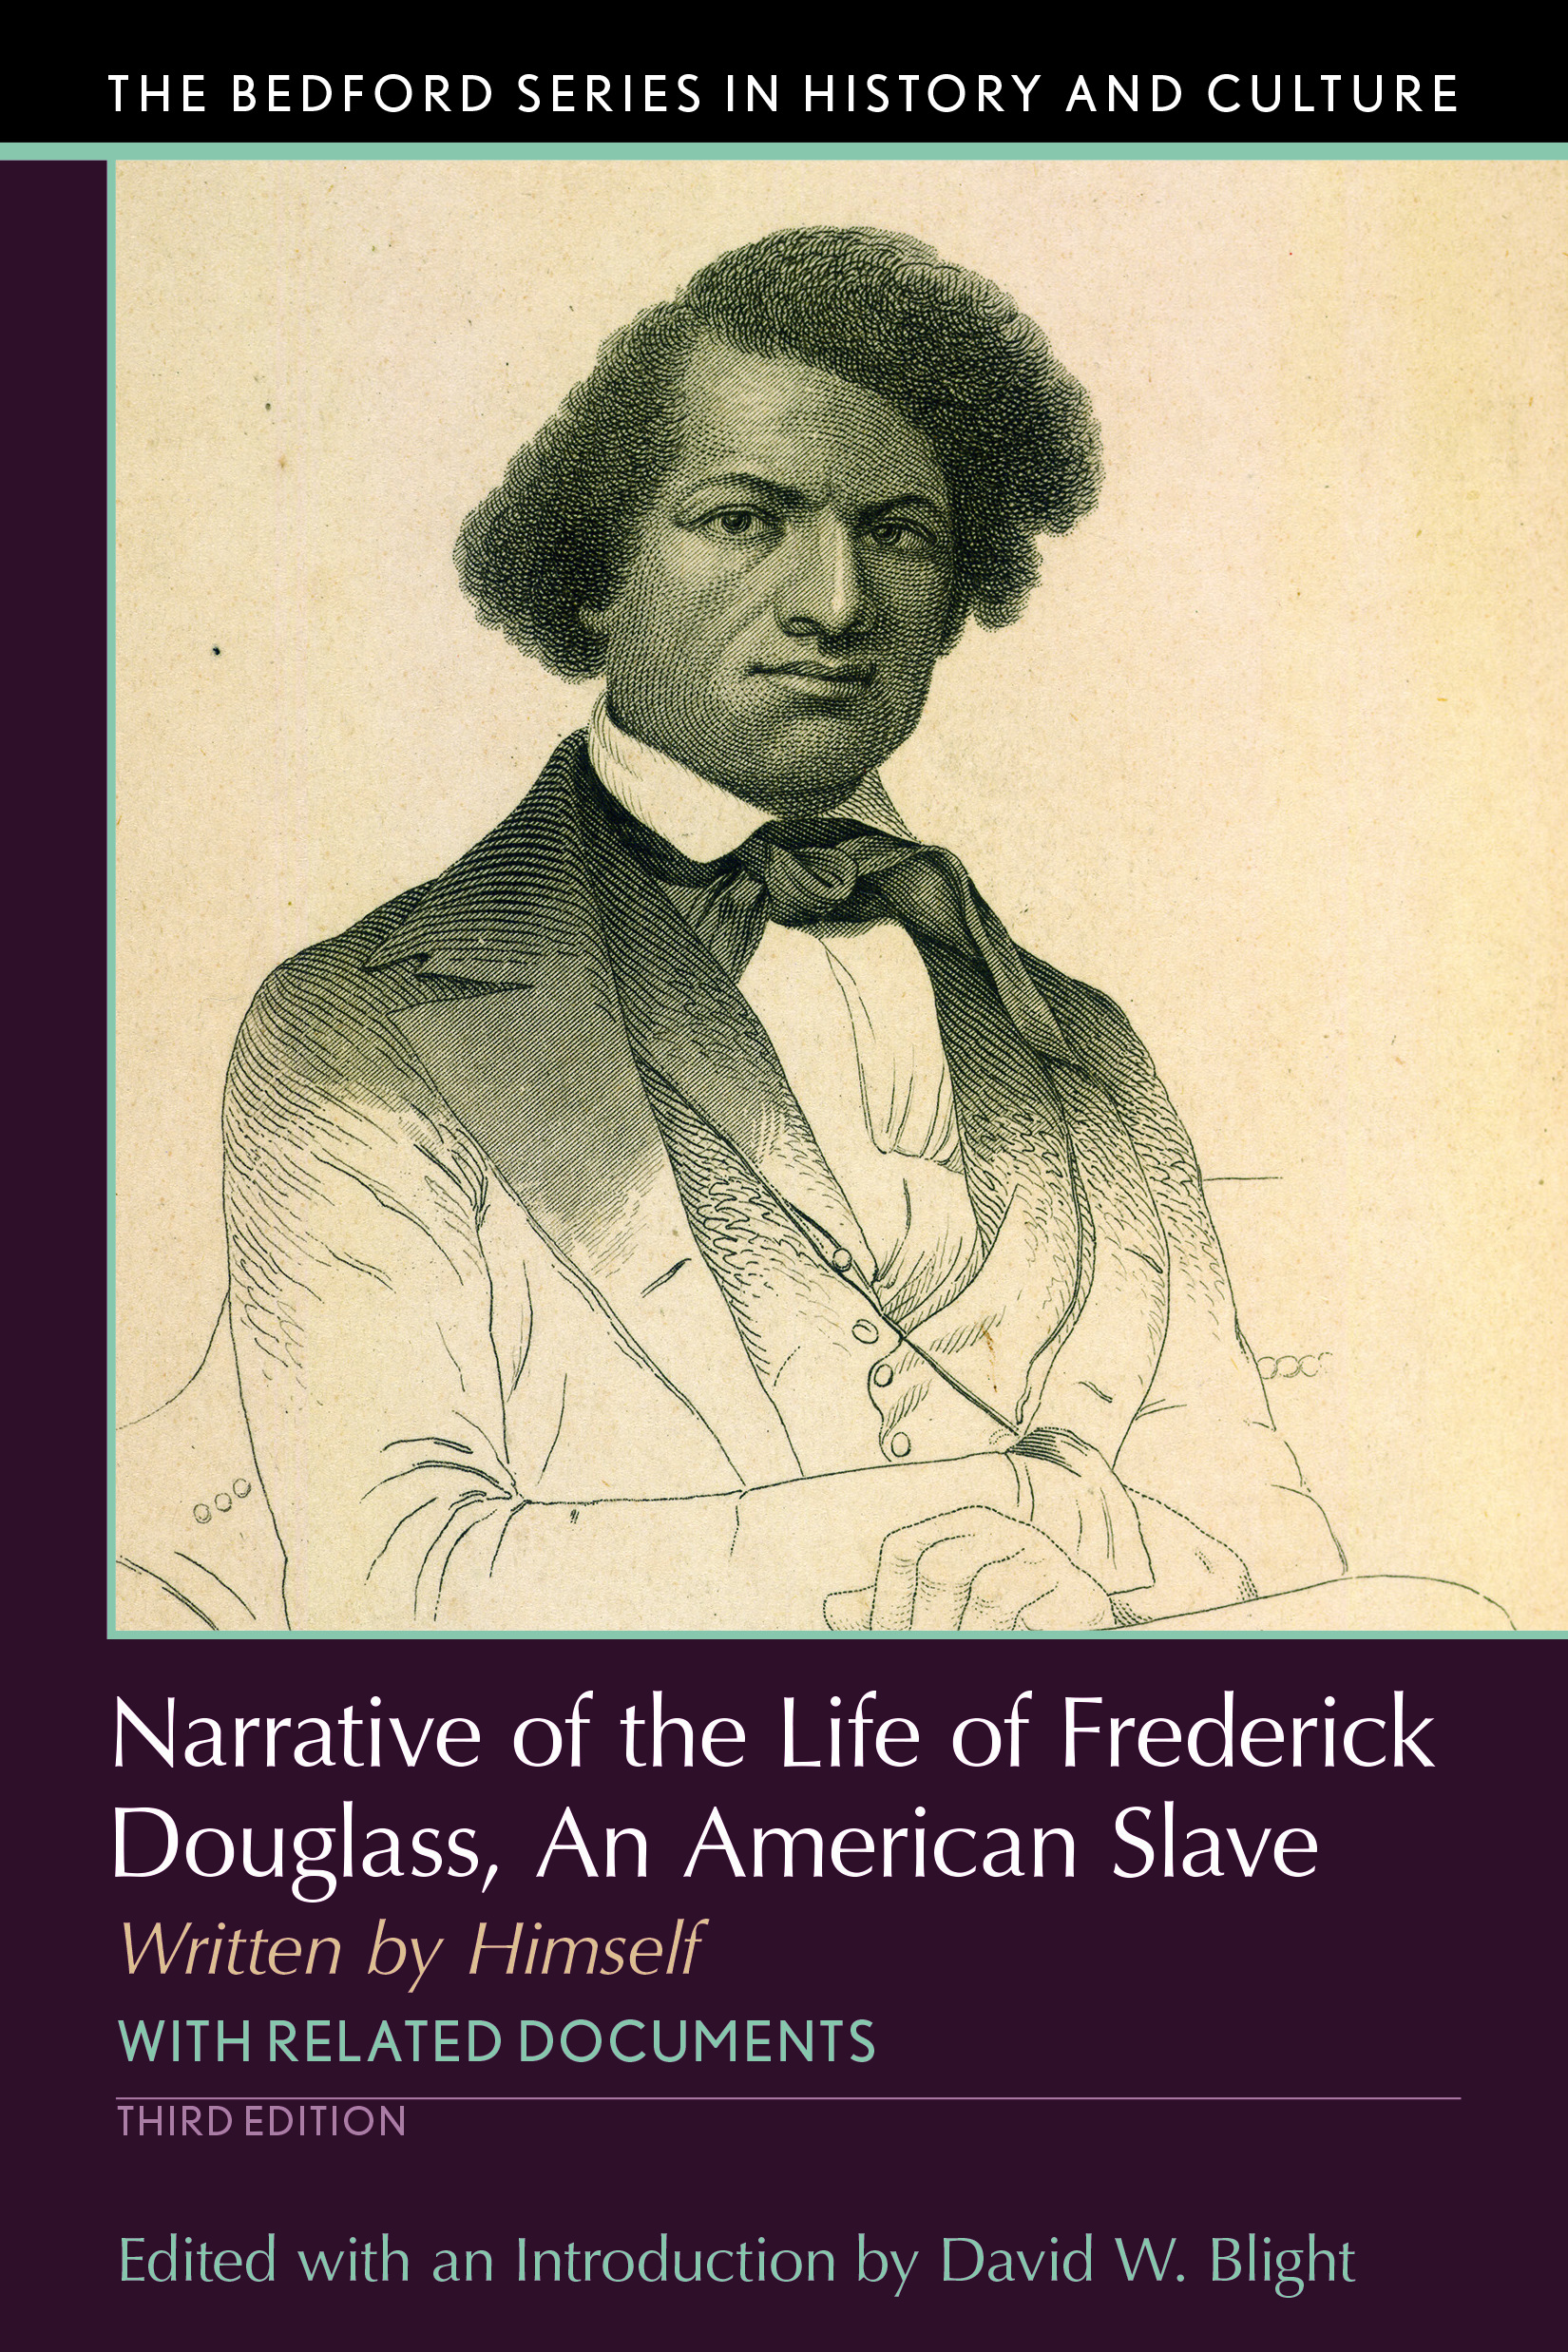 an introduction to the narrative of frederick douglass Summary a private letter from phillips, addressing douglass as my dear friend, is sometimes included as an introduction to certain editions of the narrative.